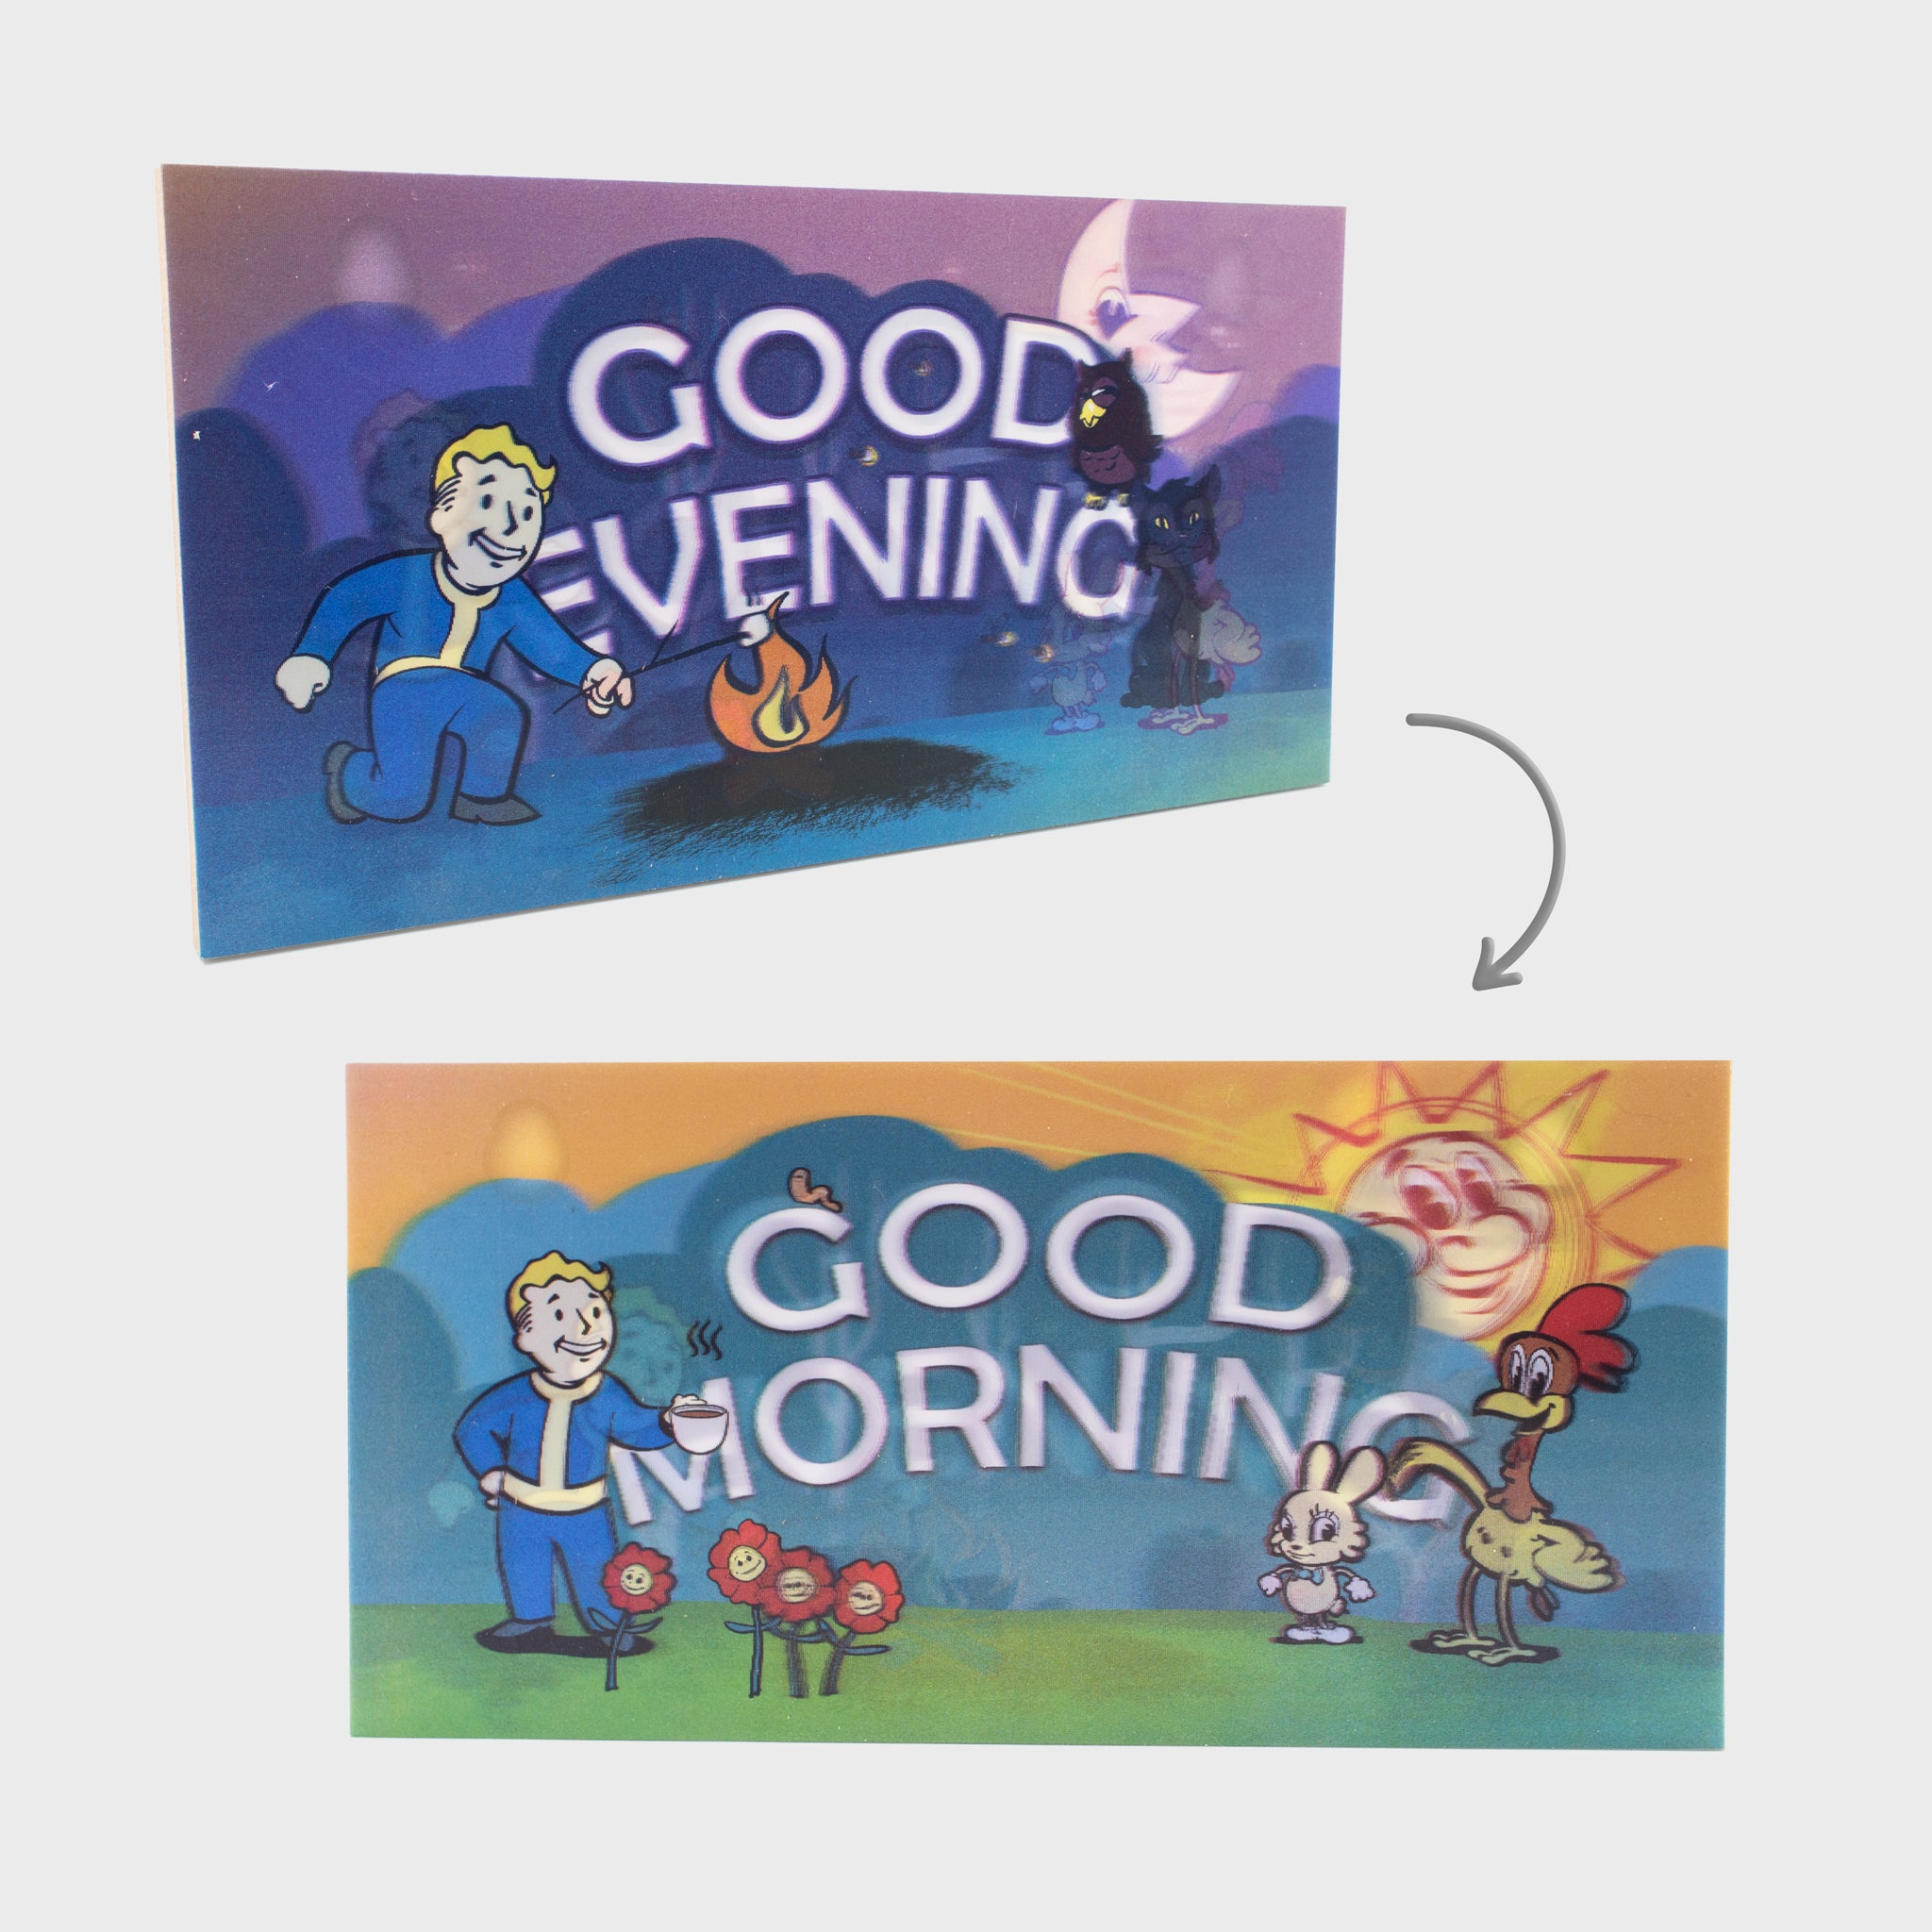 fallout 76 gaming video games vault boy nuka cola collectible lenticular signs good morning good evening culturefly